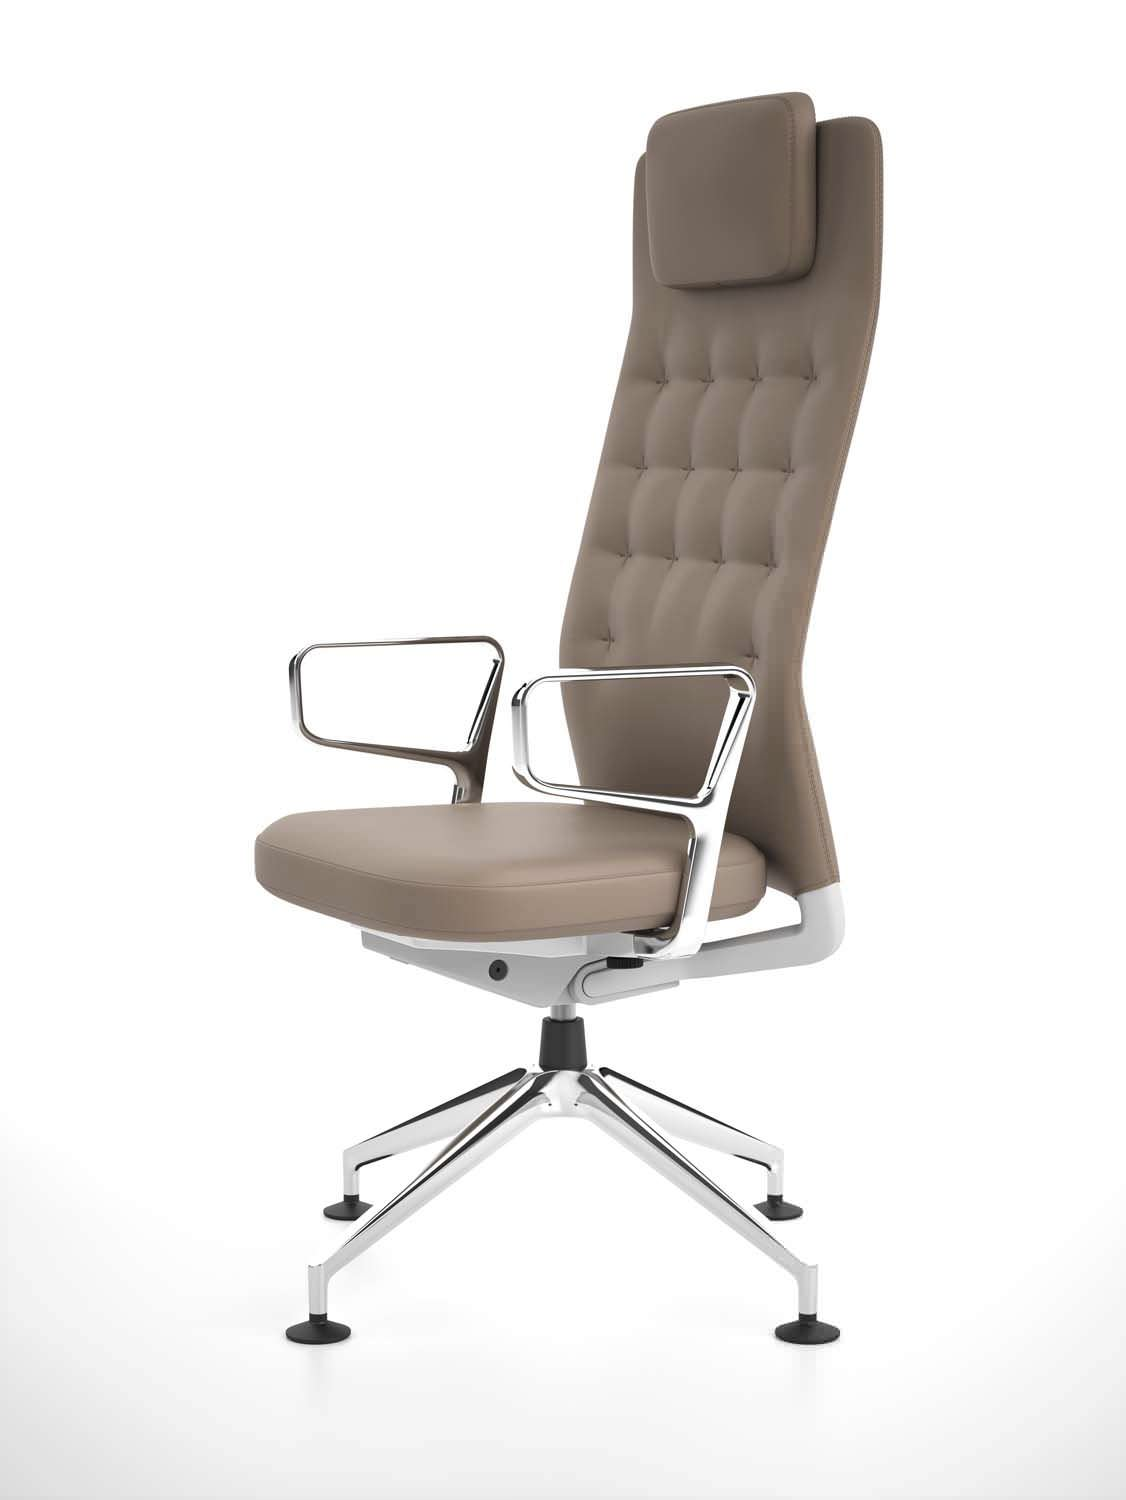 contemporary office chair ergonomic with headrest adjustable rh archiexpo com contemporary office chairs with legs contemporary office chairs uk